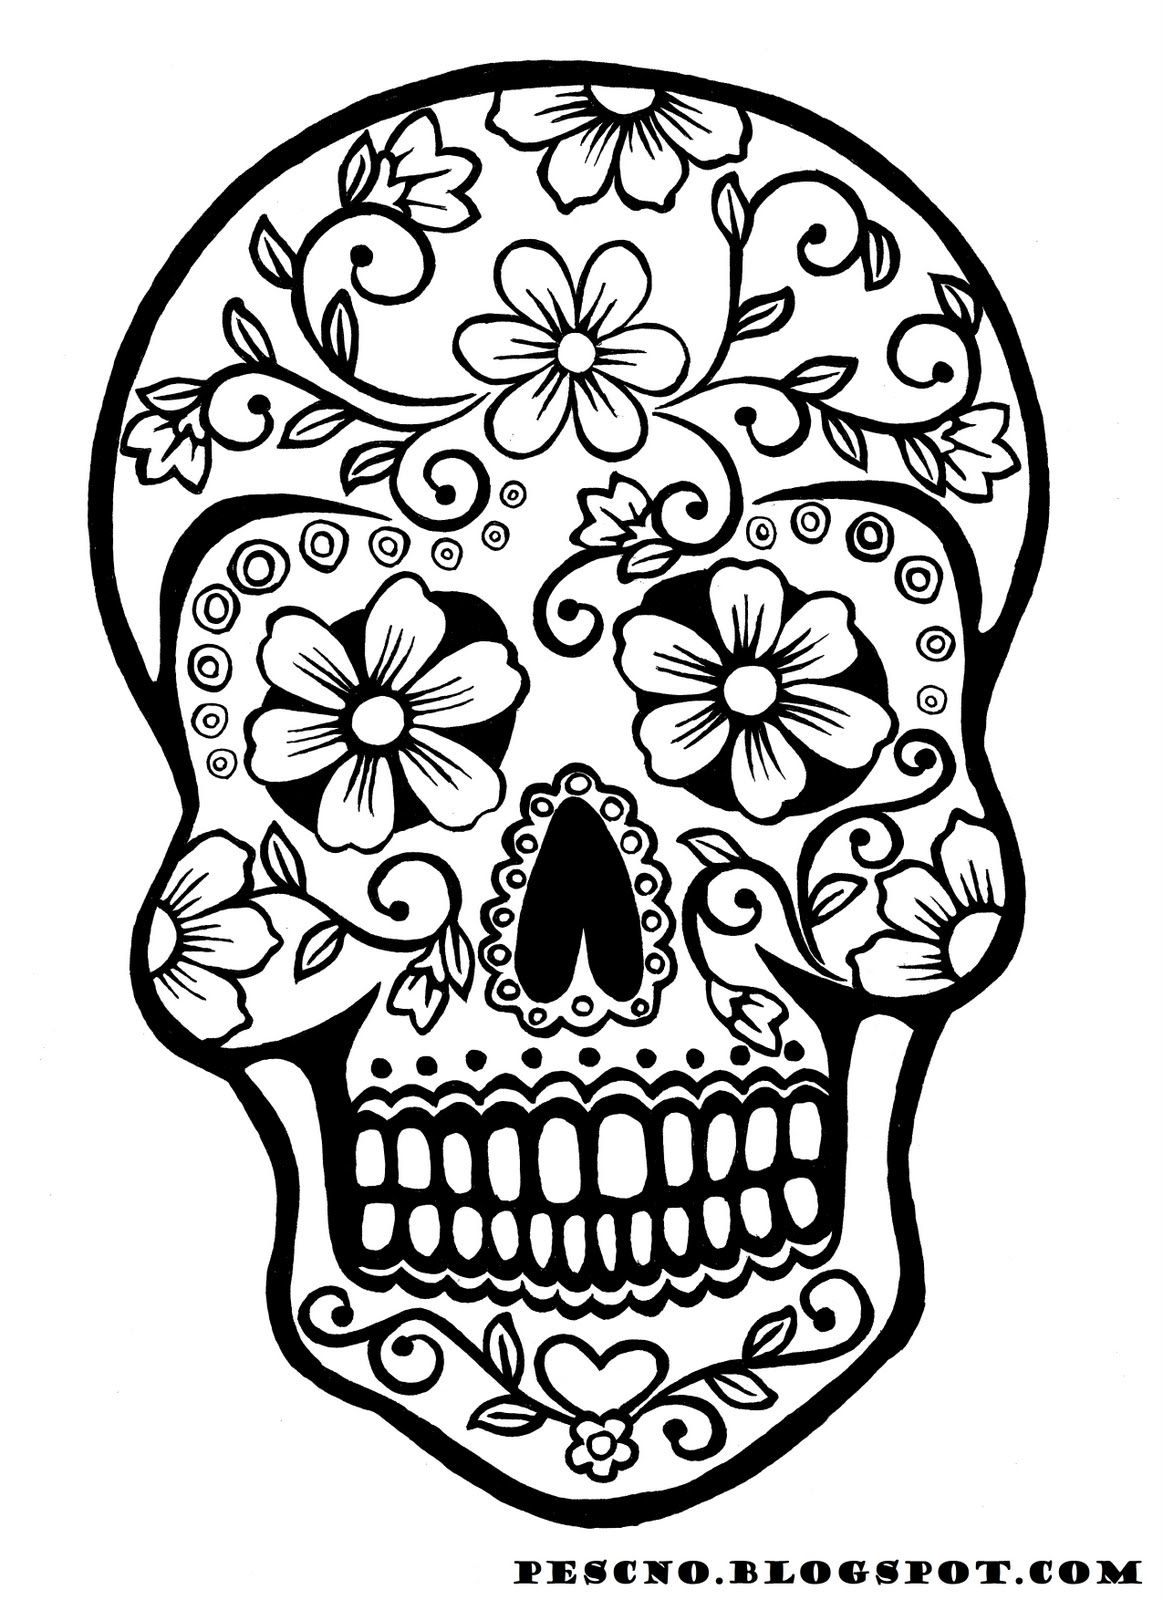 Uncategorized Day Of The Dead Coloring sugar skull coloring pages tryk billedet for en stor udgave free adult online printable sheets kids get the latest adult